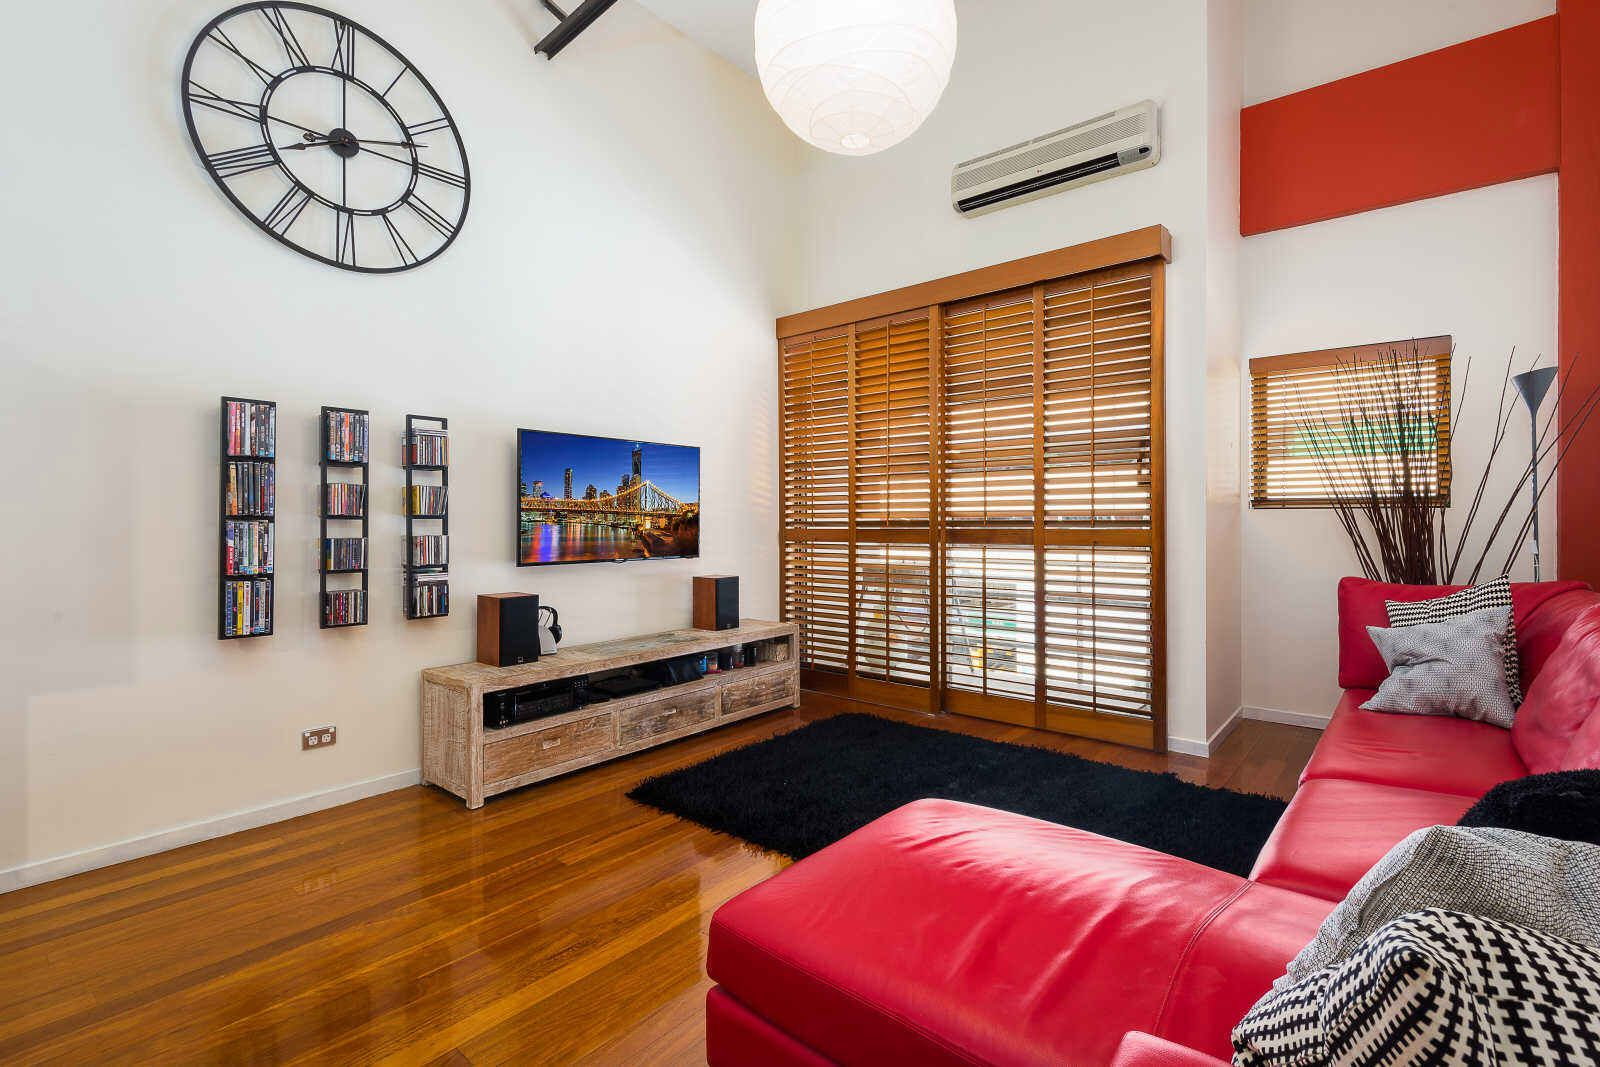 17/27 Ballow Street, Fortitude Valley QLD 4006, Image 1